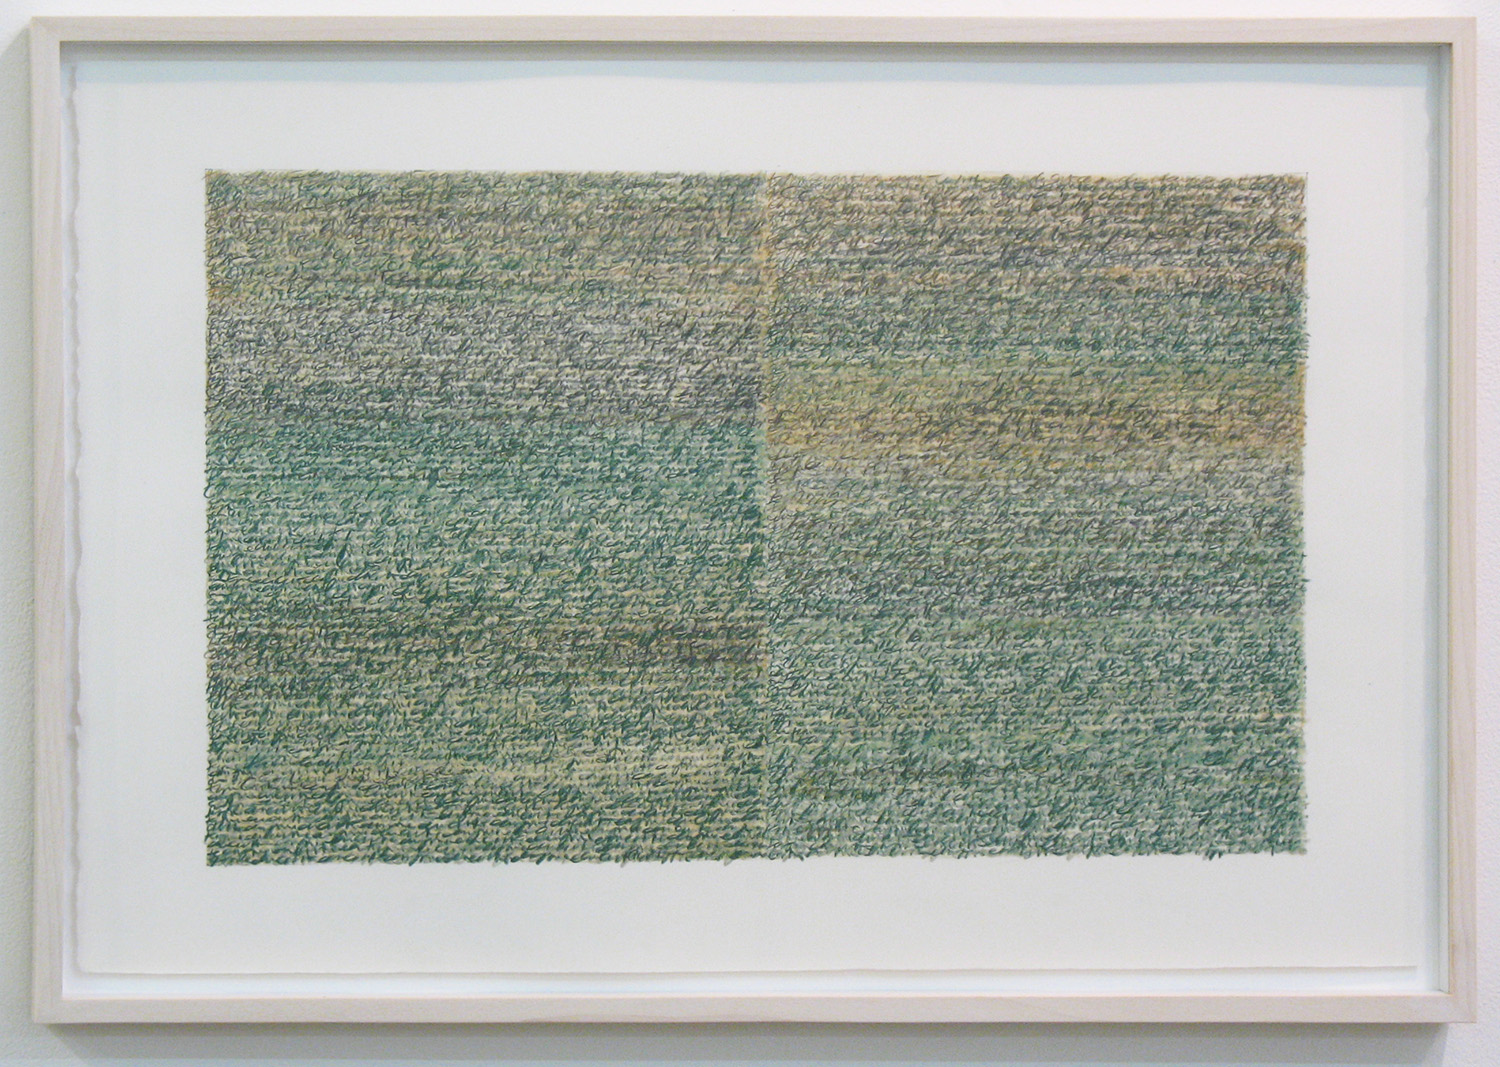 Silent Sound 1 <br>pigment pencil on paper, 38.5 x 56.5 cm (paper size), 2008